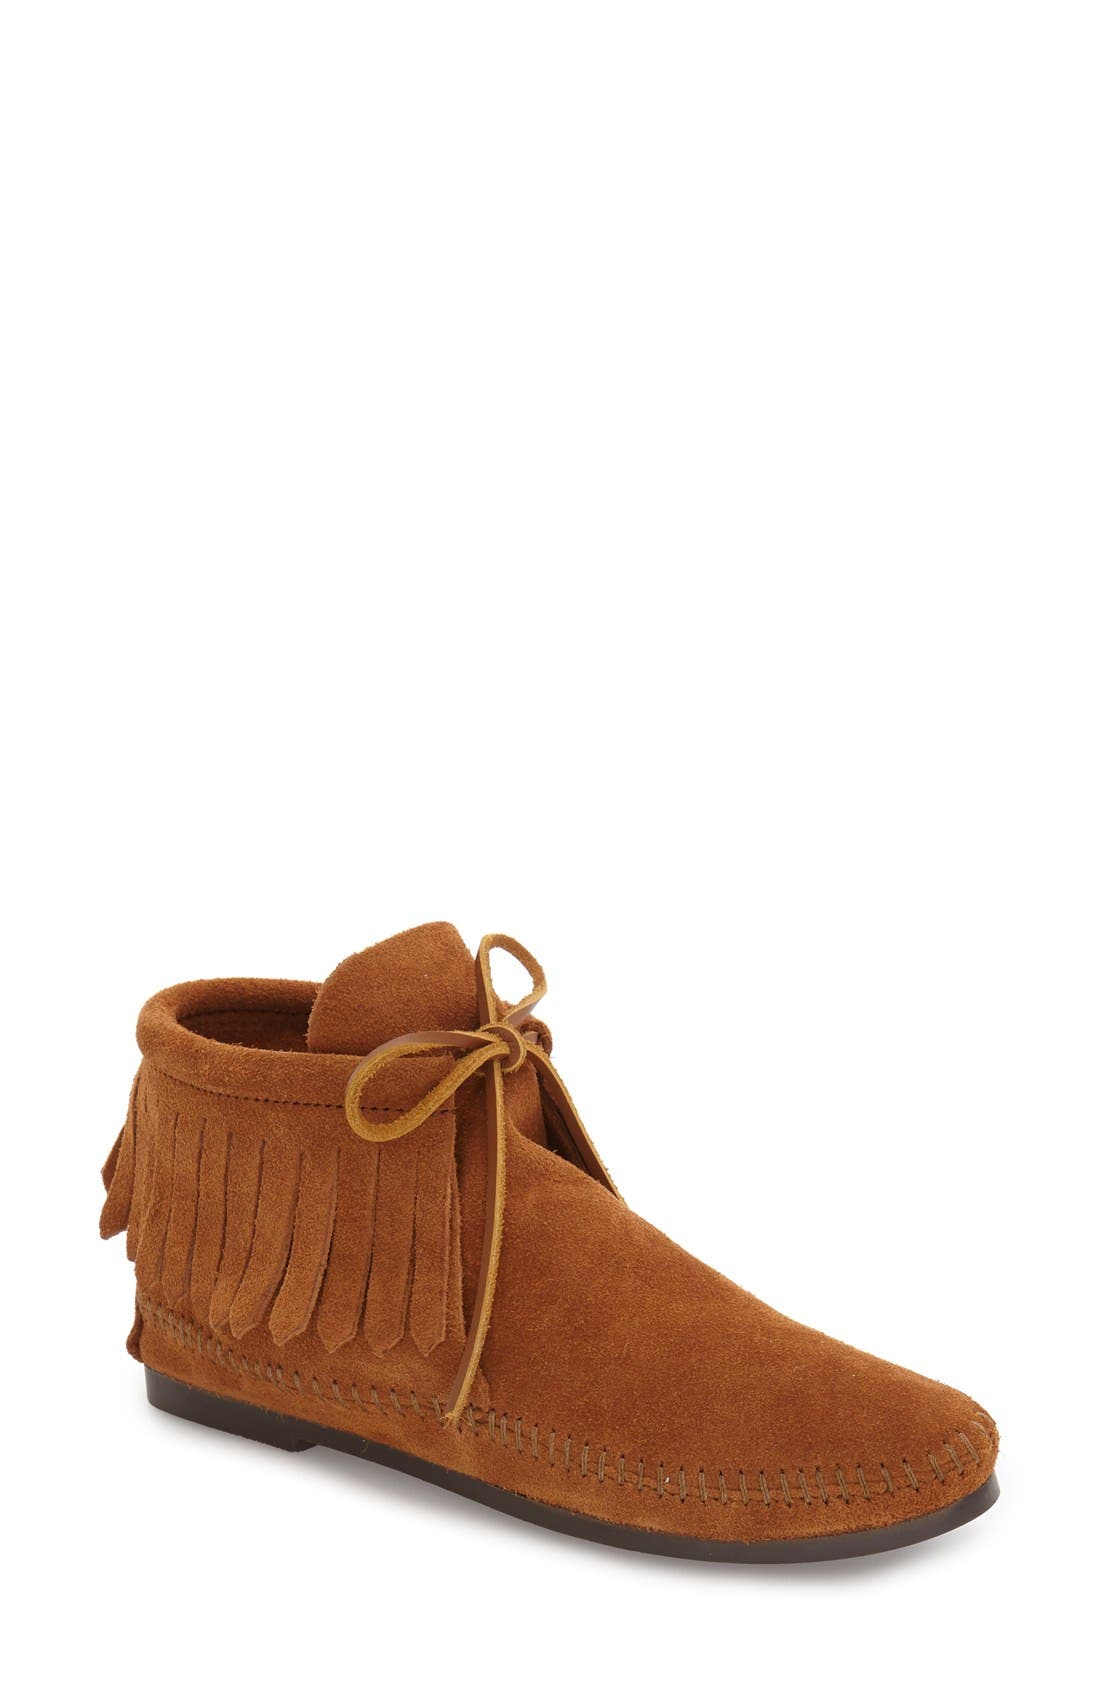 Classic Fringed Chukka Style Boot,                             Main thumbnail 1, color,                             BROWN